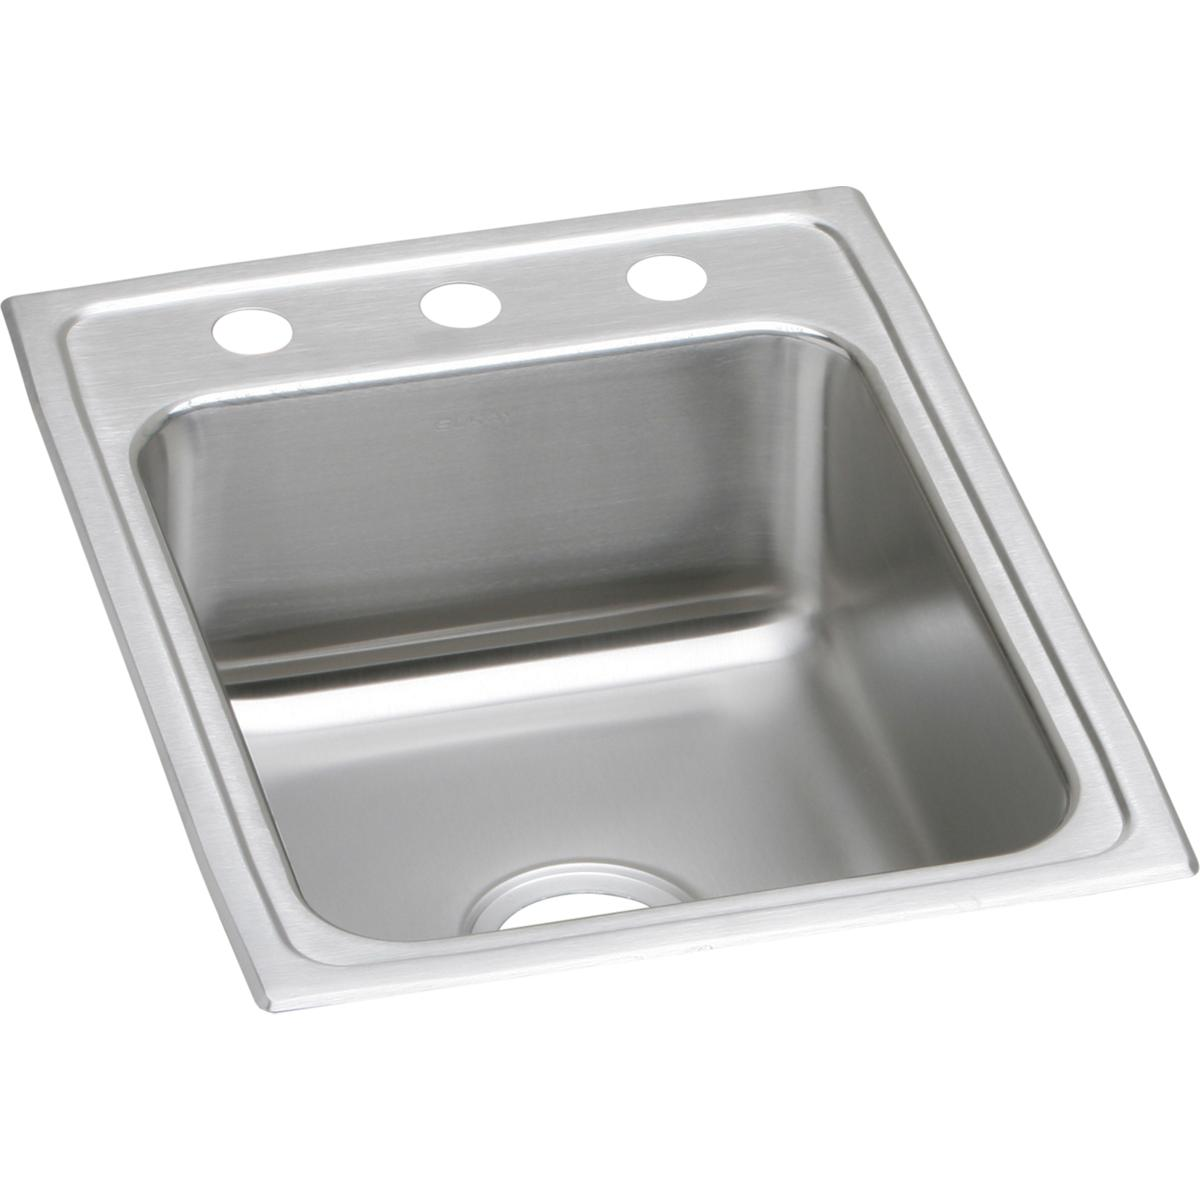 "Elkay Lustertone Classic Stainless Steel 17"" x 22"" x 6-1/2"", Single Bowl Drop-in ADA Sink"